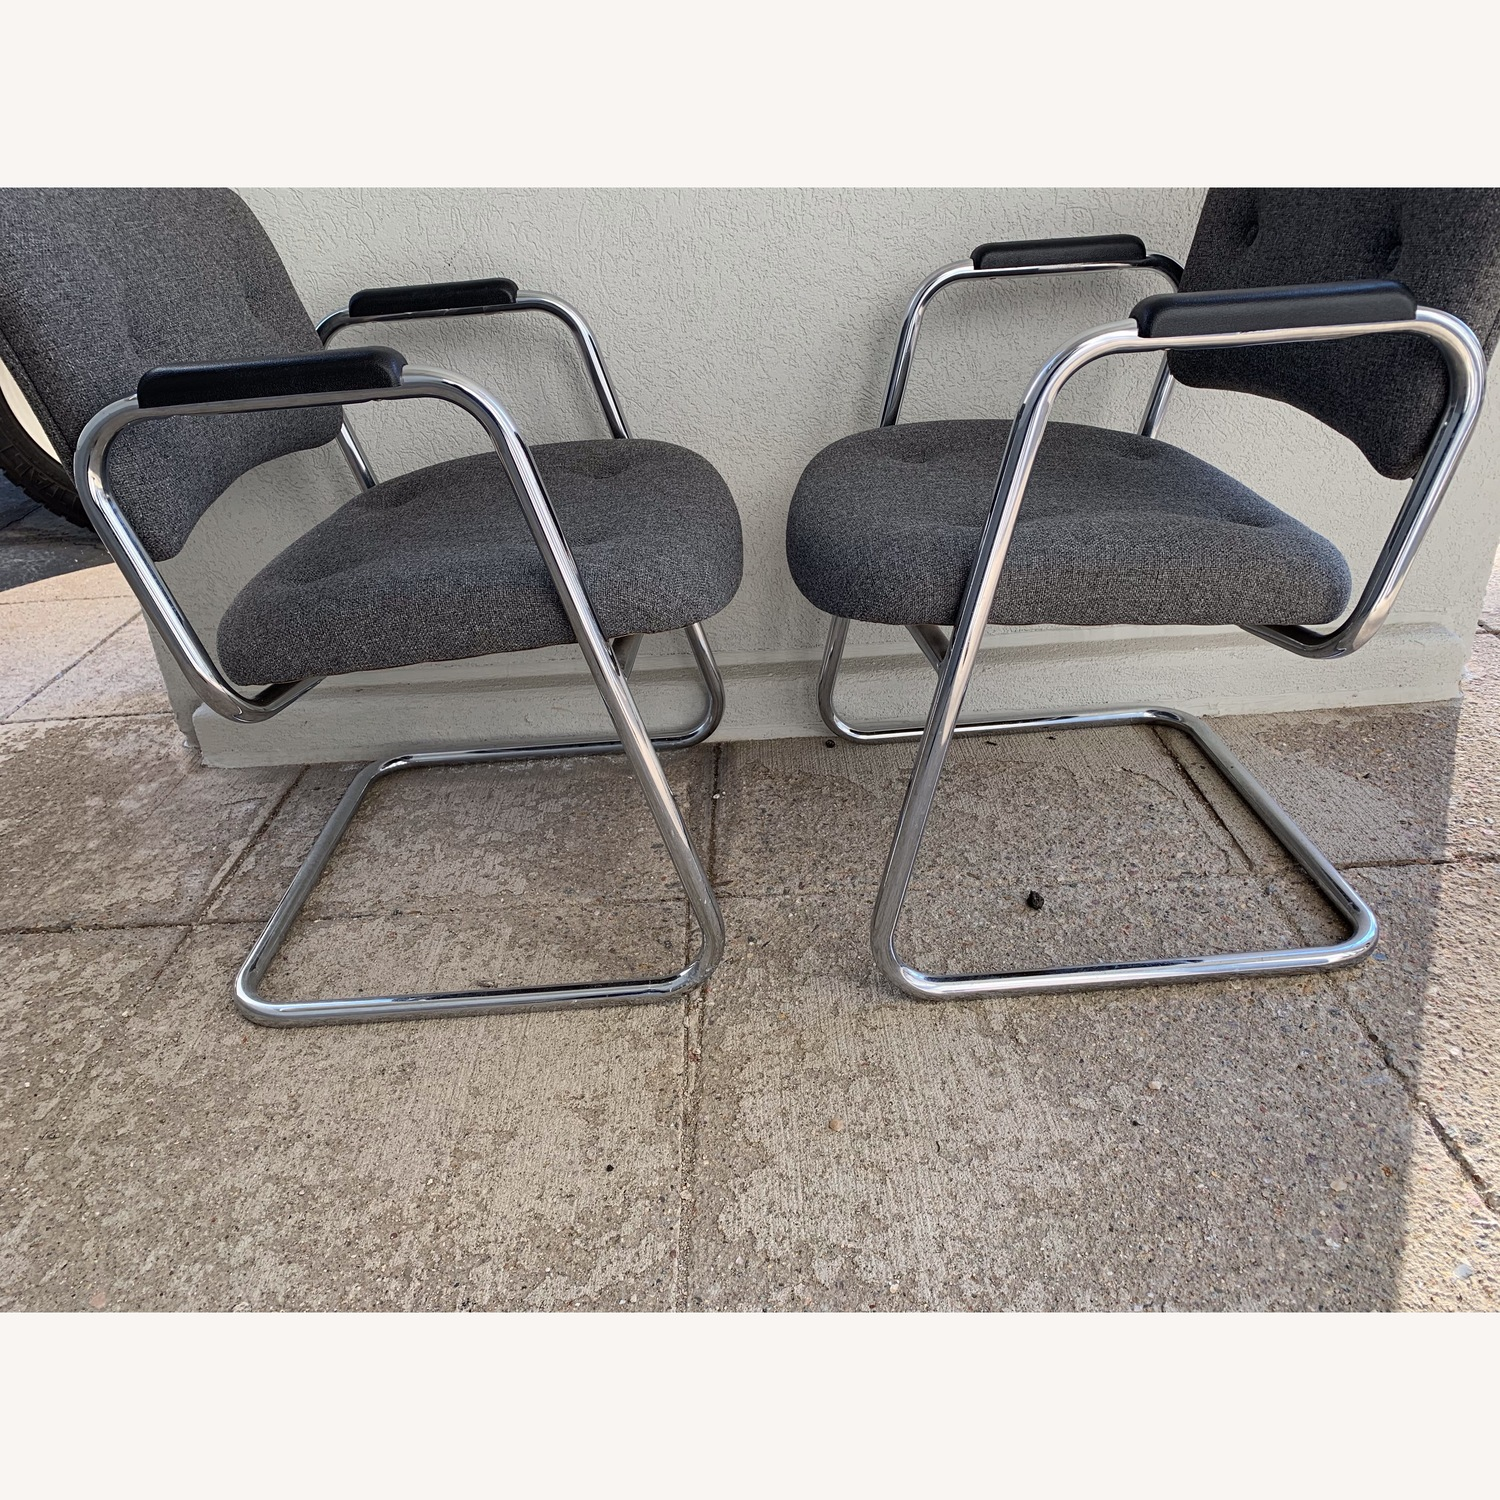 United Chair Company Cantilever Chairs - image-8